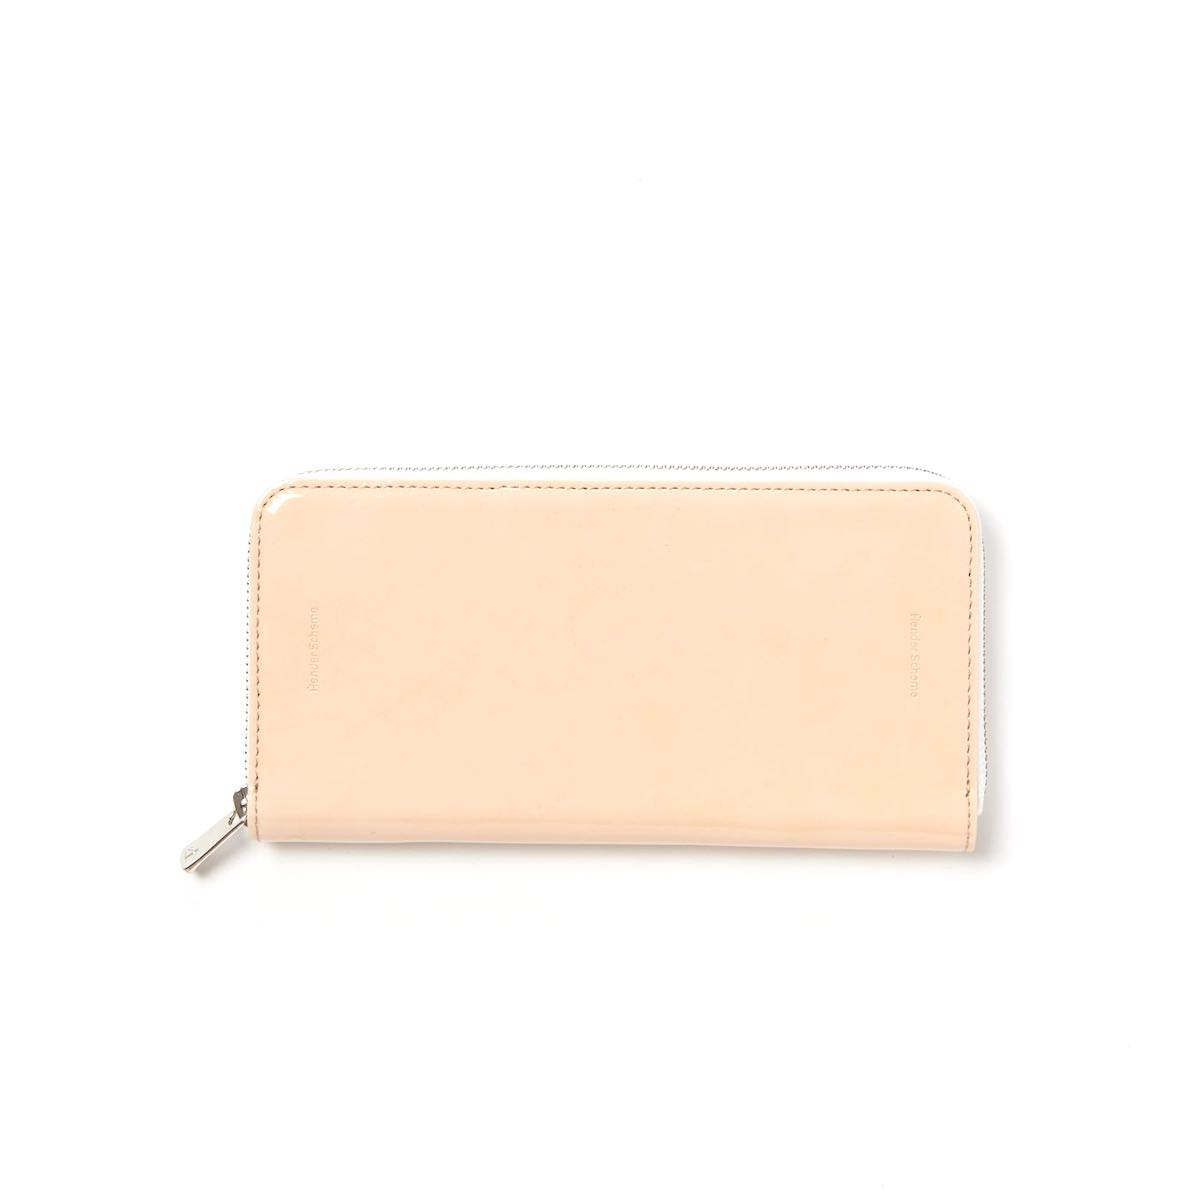 Hender Scheme / long zip purse (Patent Natural)